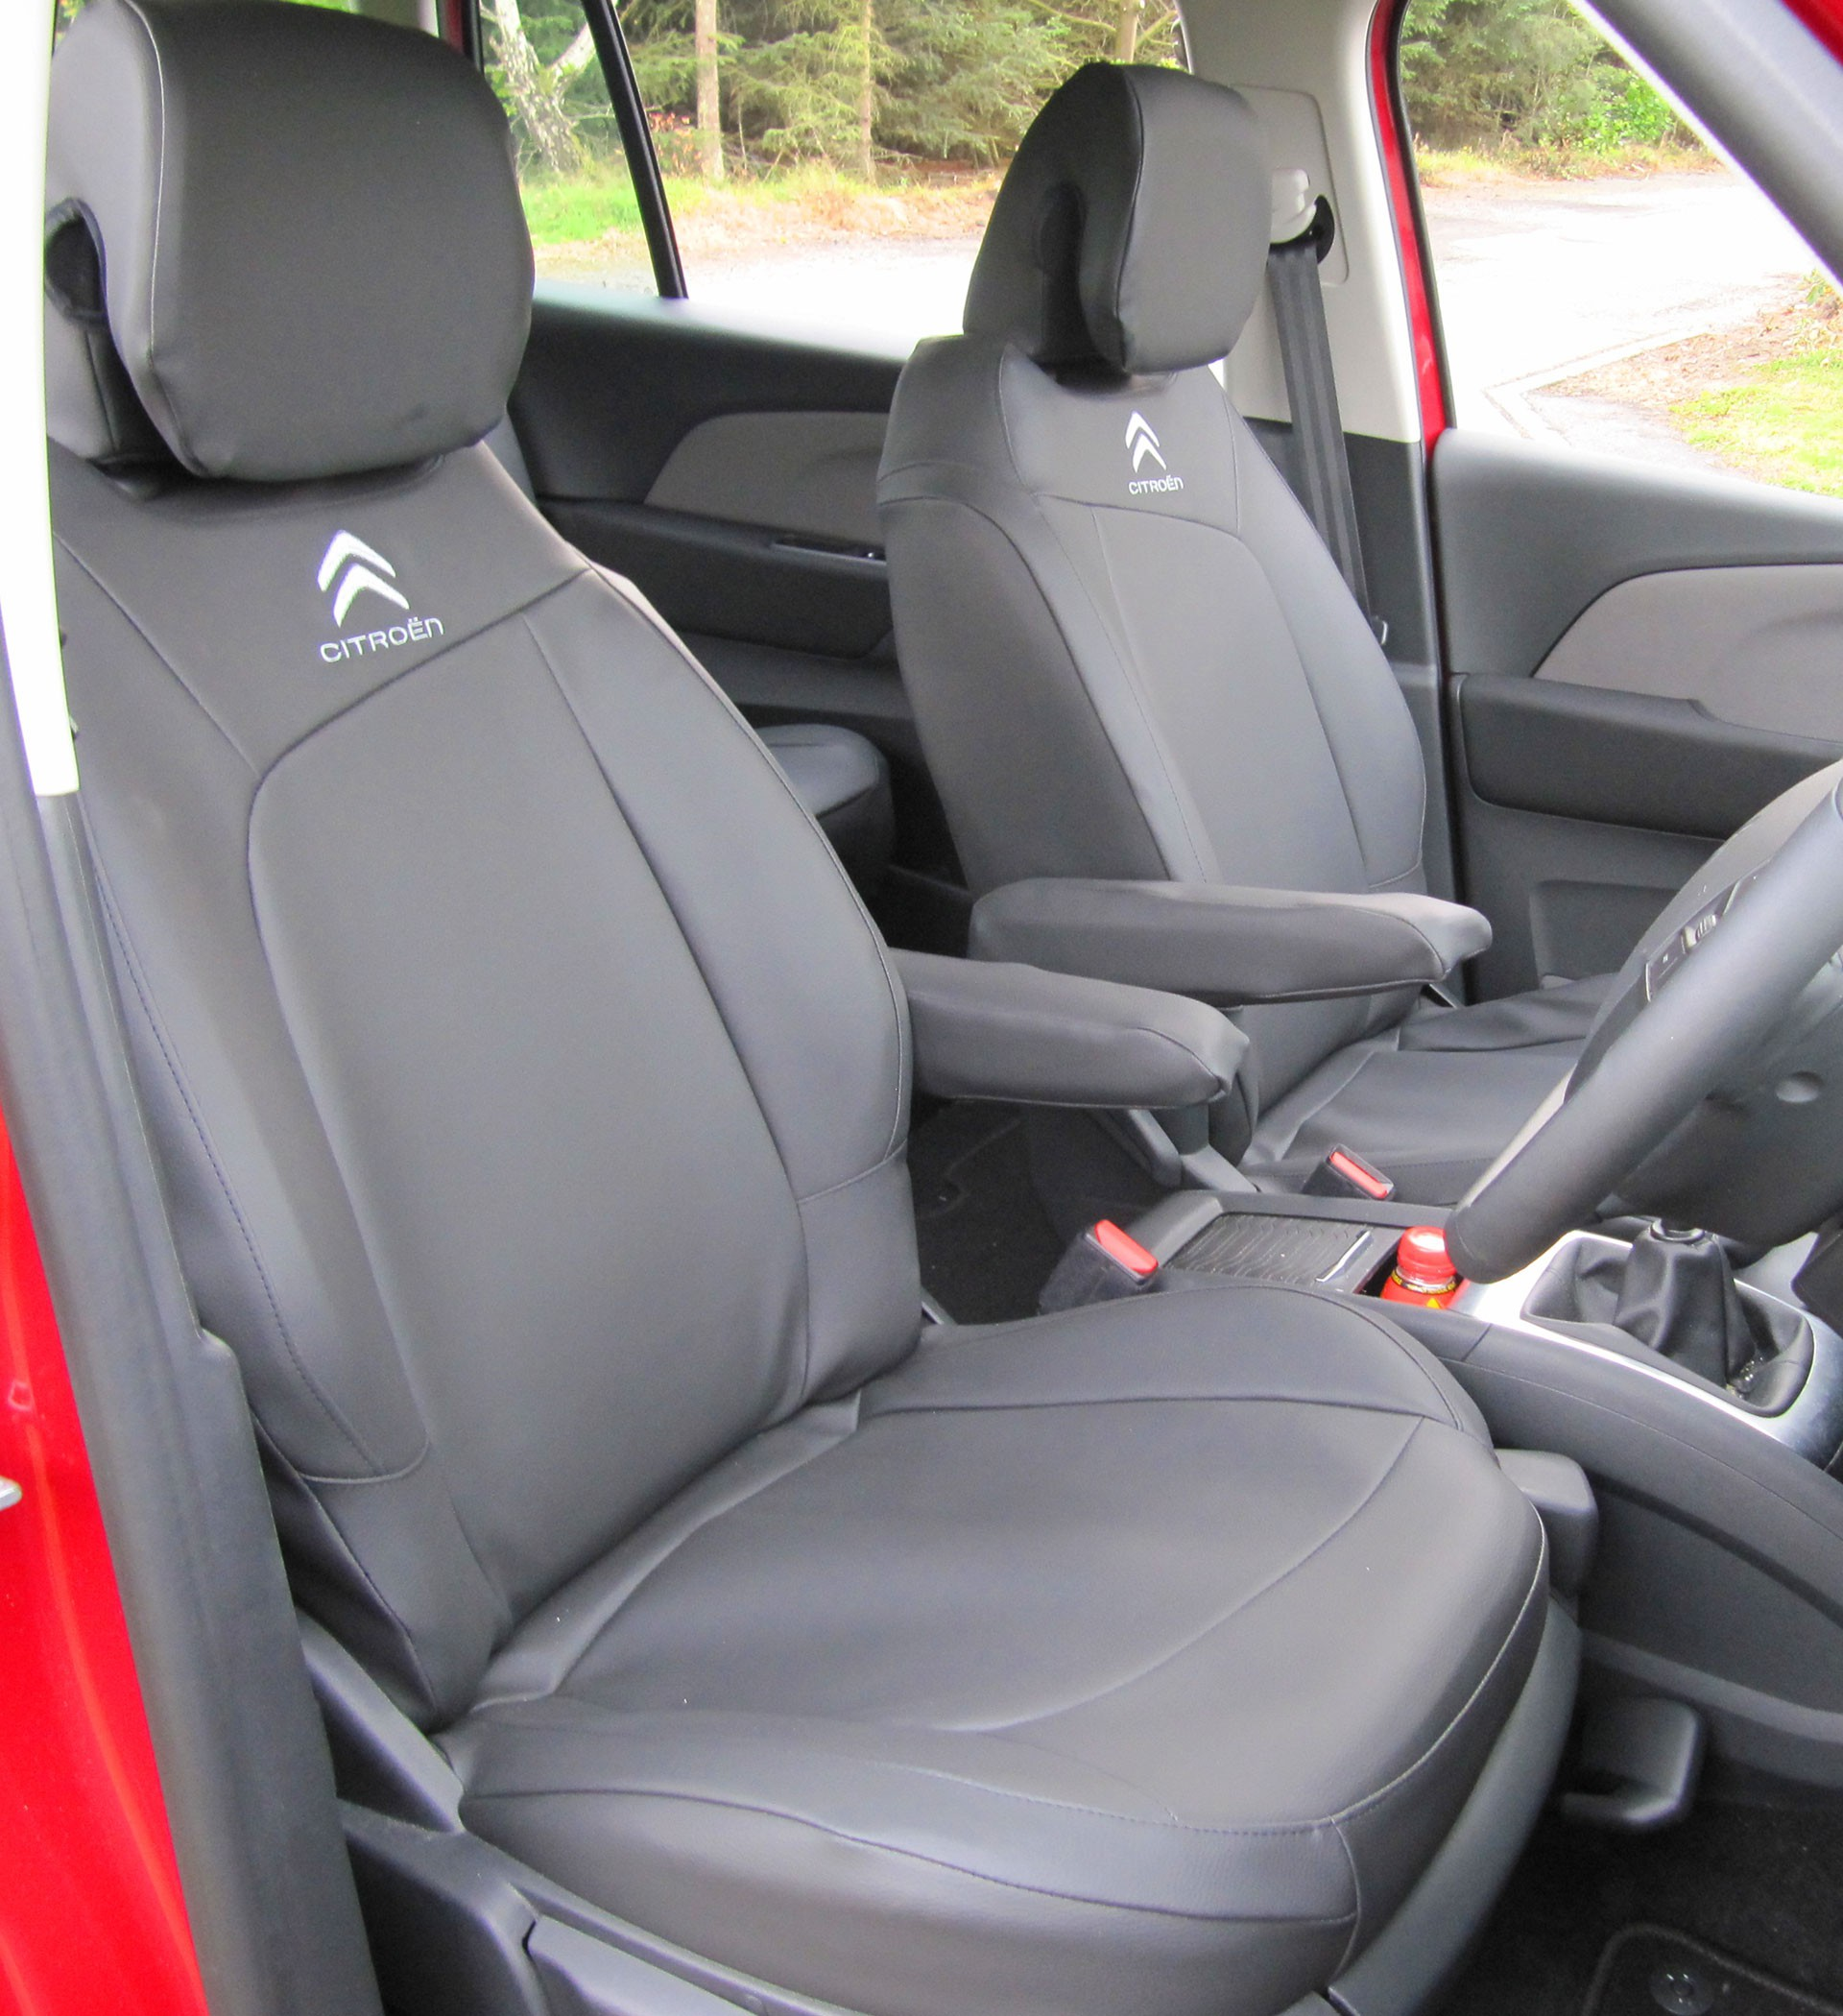 CITROEN C4 PICASSO 2013 ON ECO LEATHER /& ALICANTE FRONT UNIVERSAL SEAT COVERS